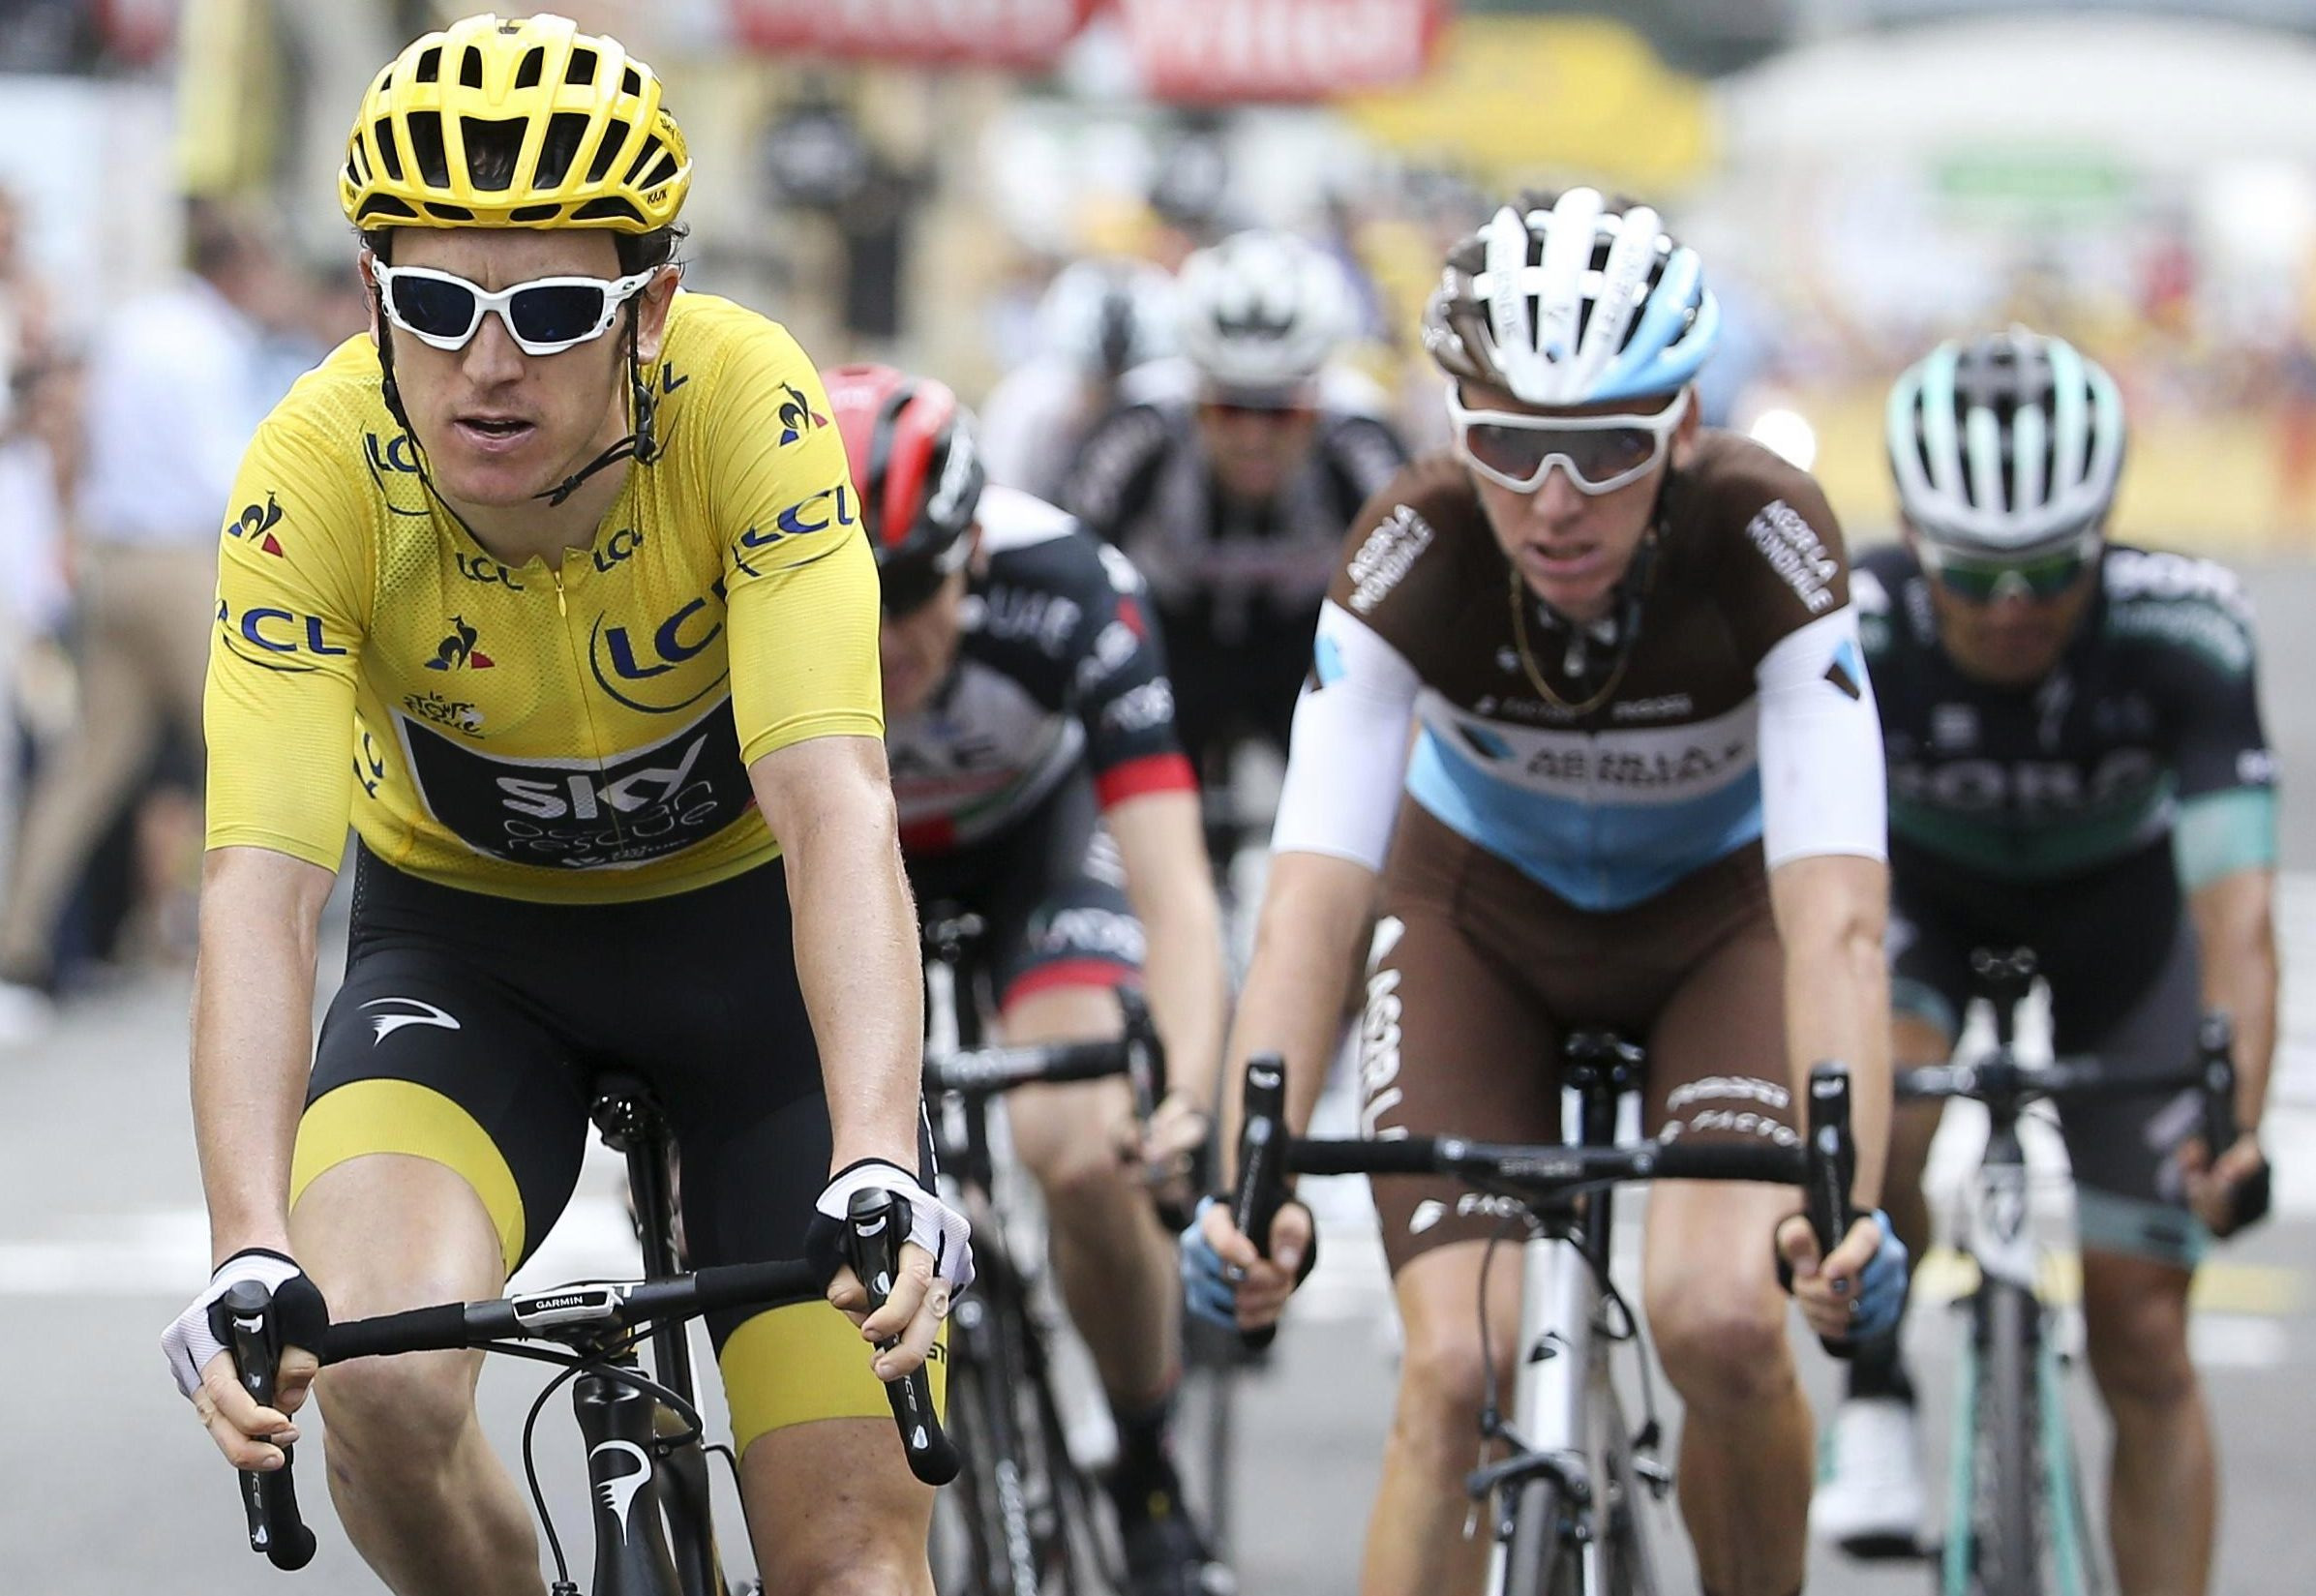 Geraint Thomas is well placed to cling on for a momentous Tour de France triumph